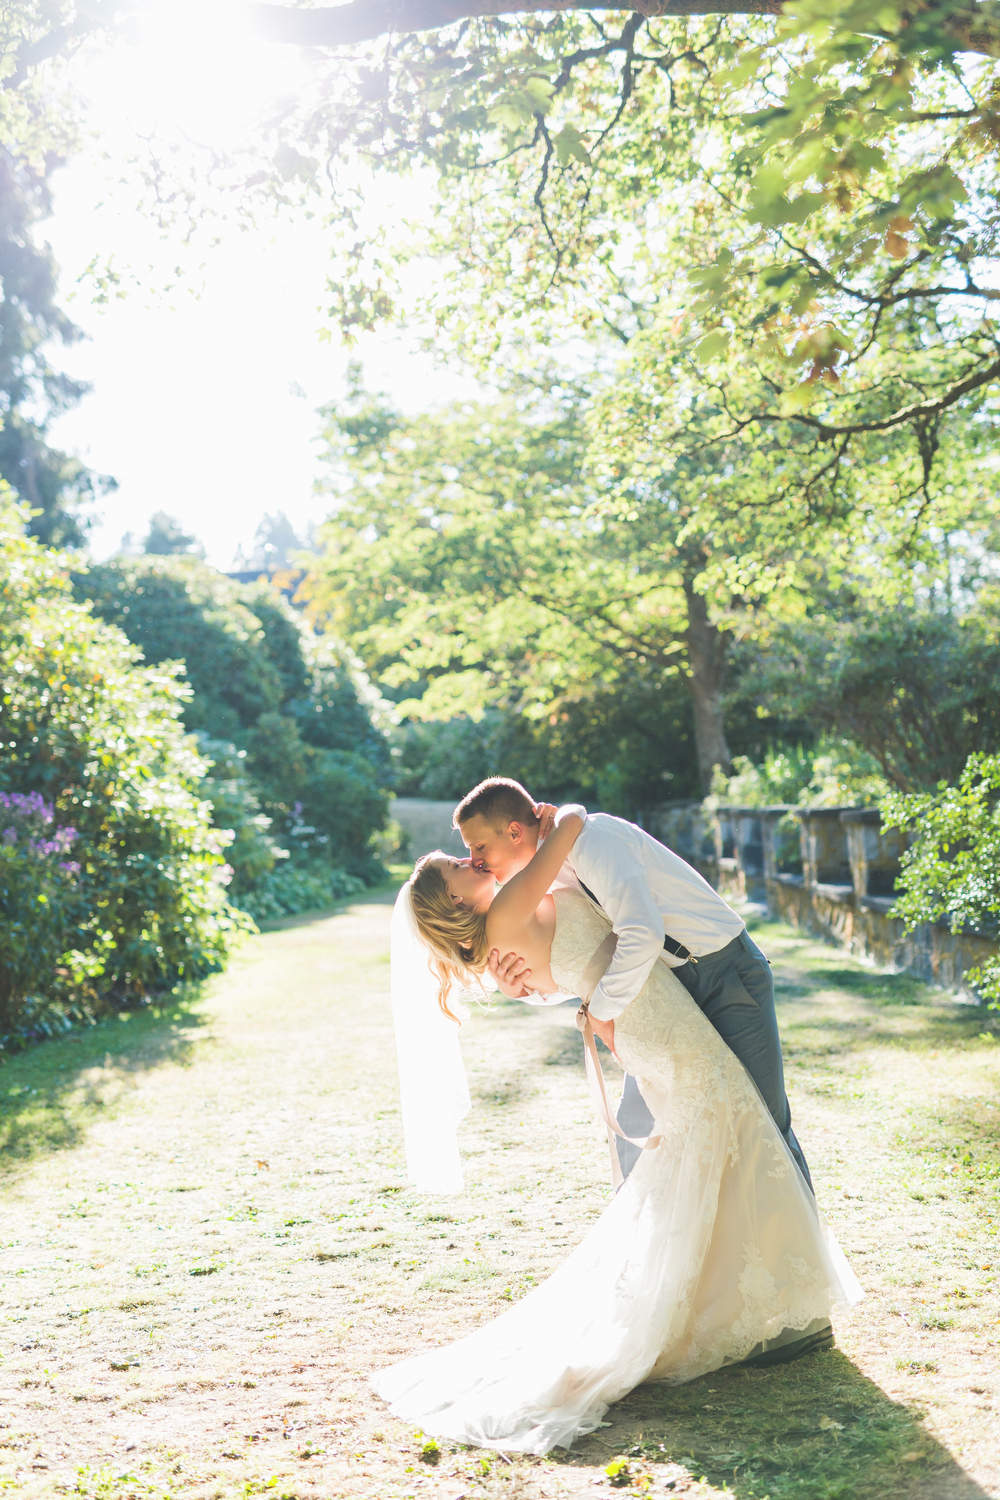 Vancouver Wedding Photographer, Jennifer Picard Photography, Aberthau Mansion Wedding Photographer